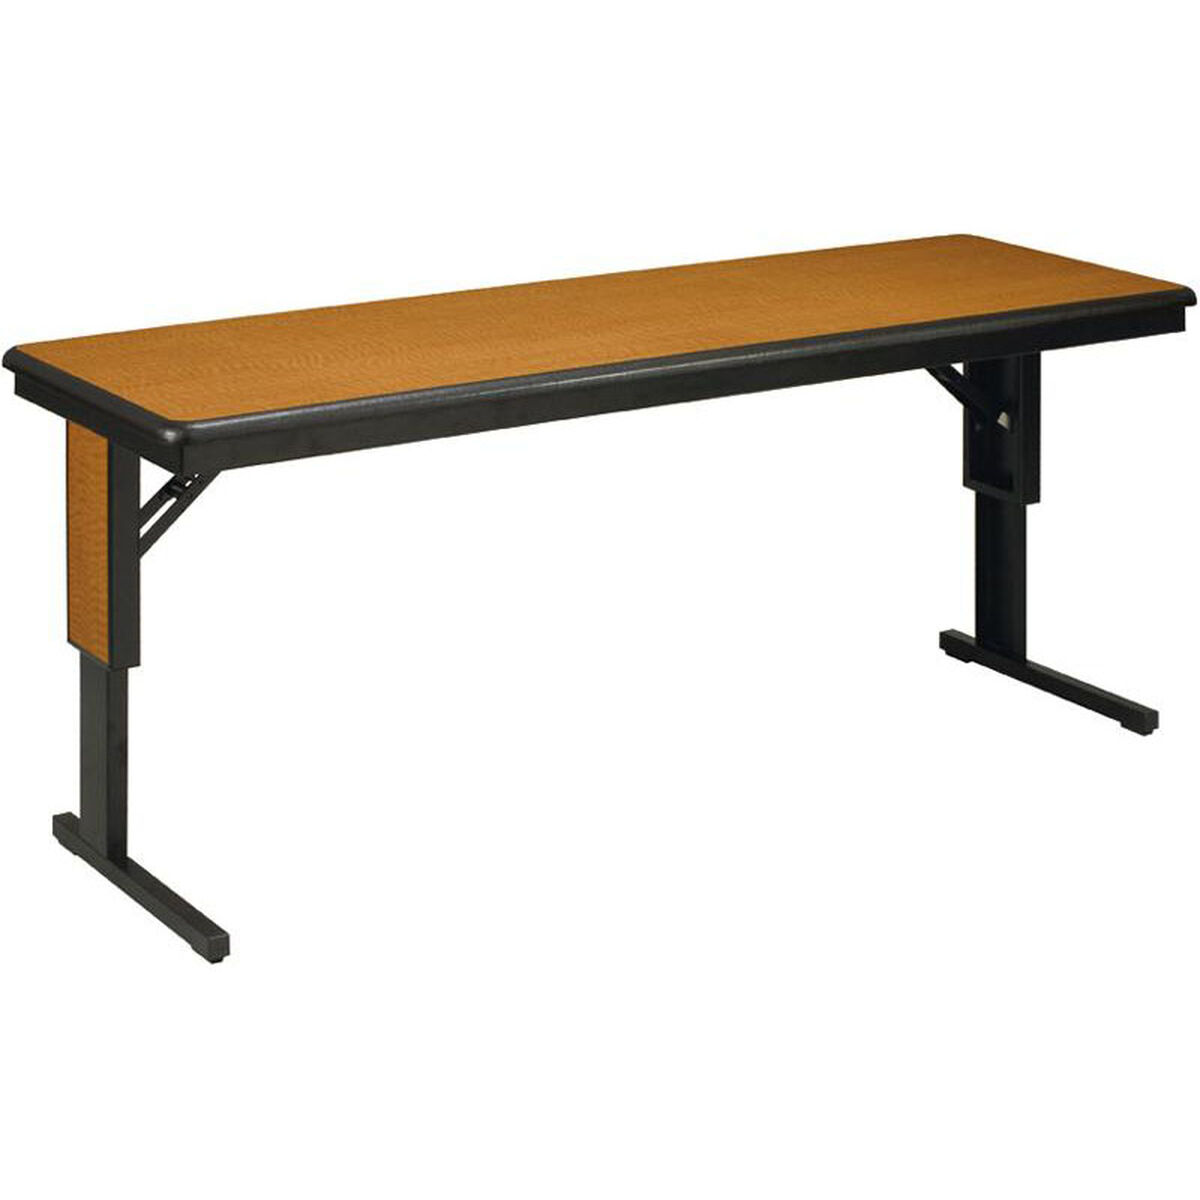 CTLF Series Training Table CTLAF FoldingChairsLesscom - Adjustable training table